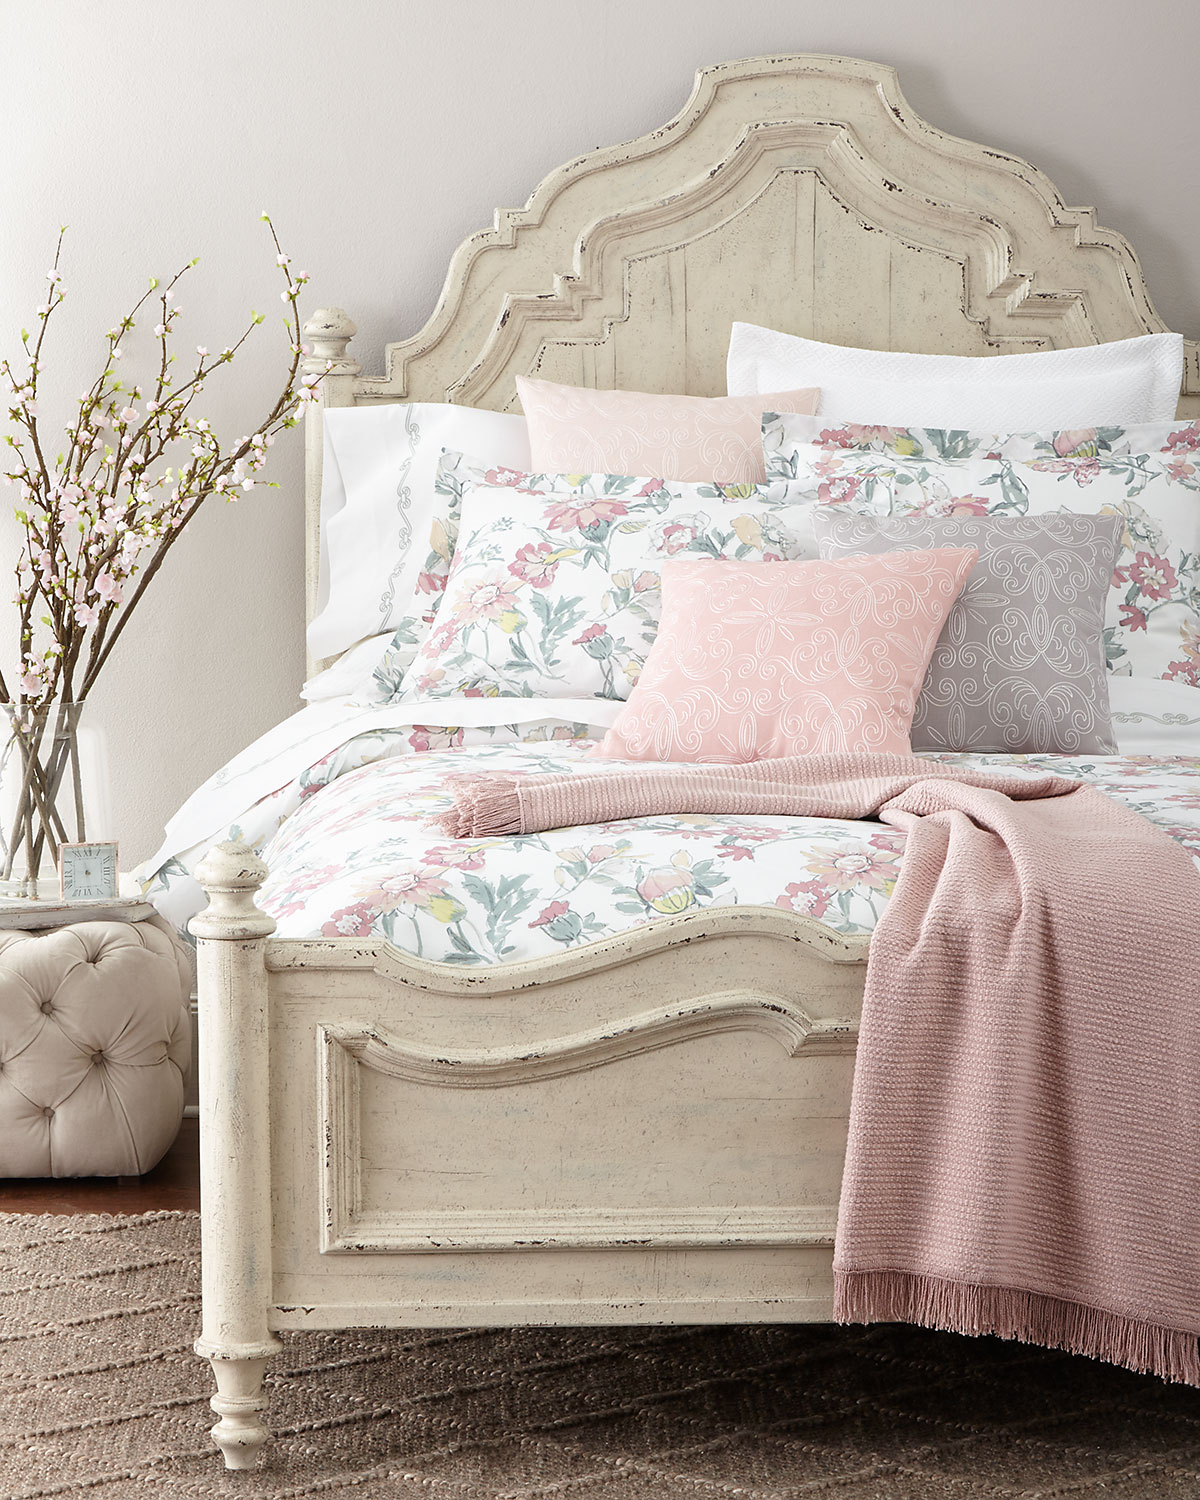 Luxury Bedding Duvet Covers Sheets Amp More At Horchow